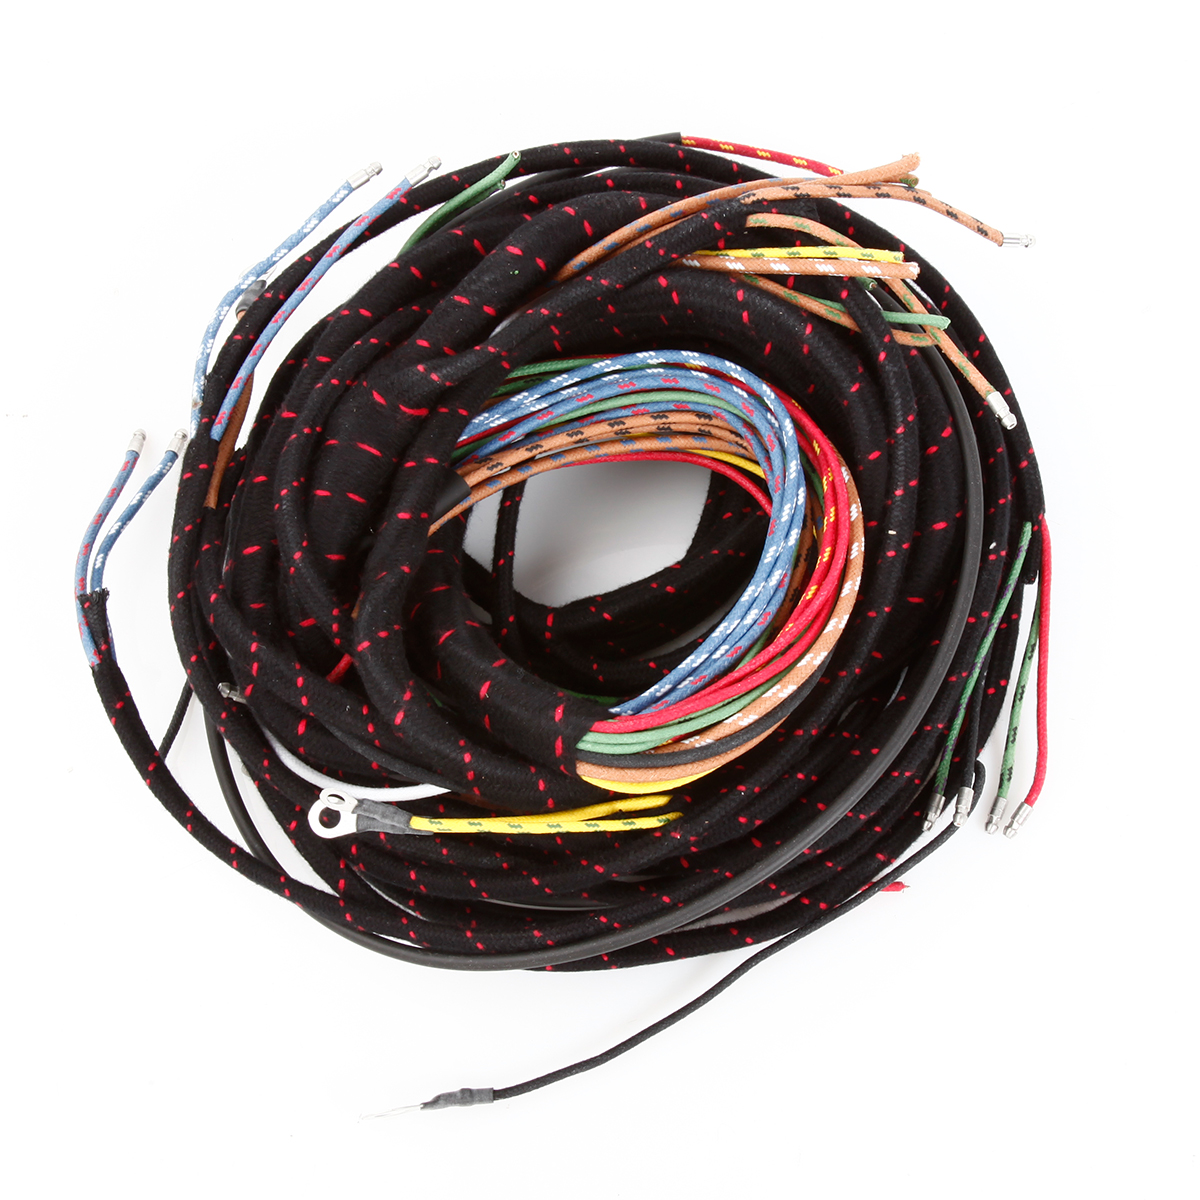 hight resolution of early harness lacquer braid insulation with woven cotton cloth covering